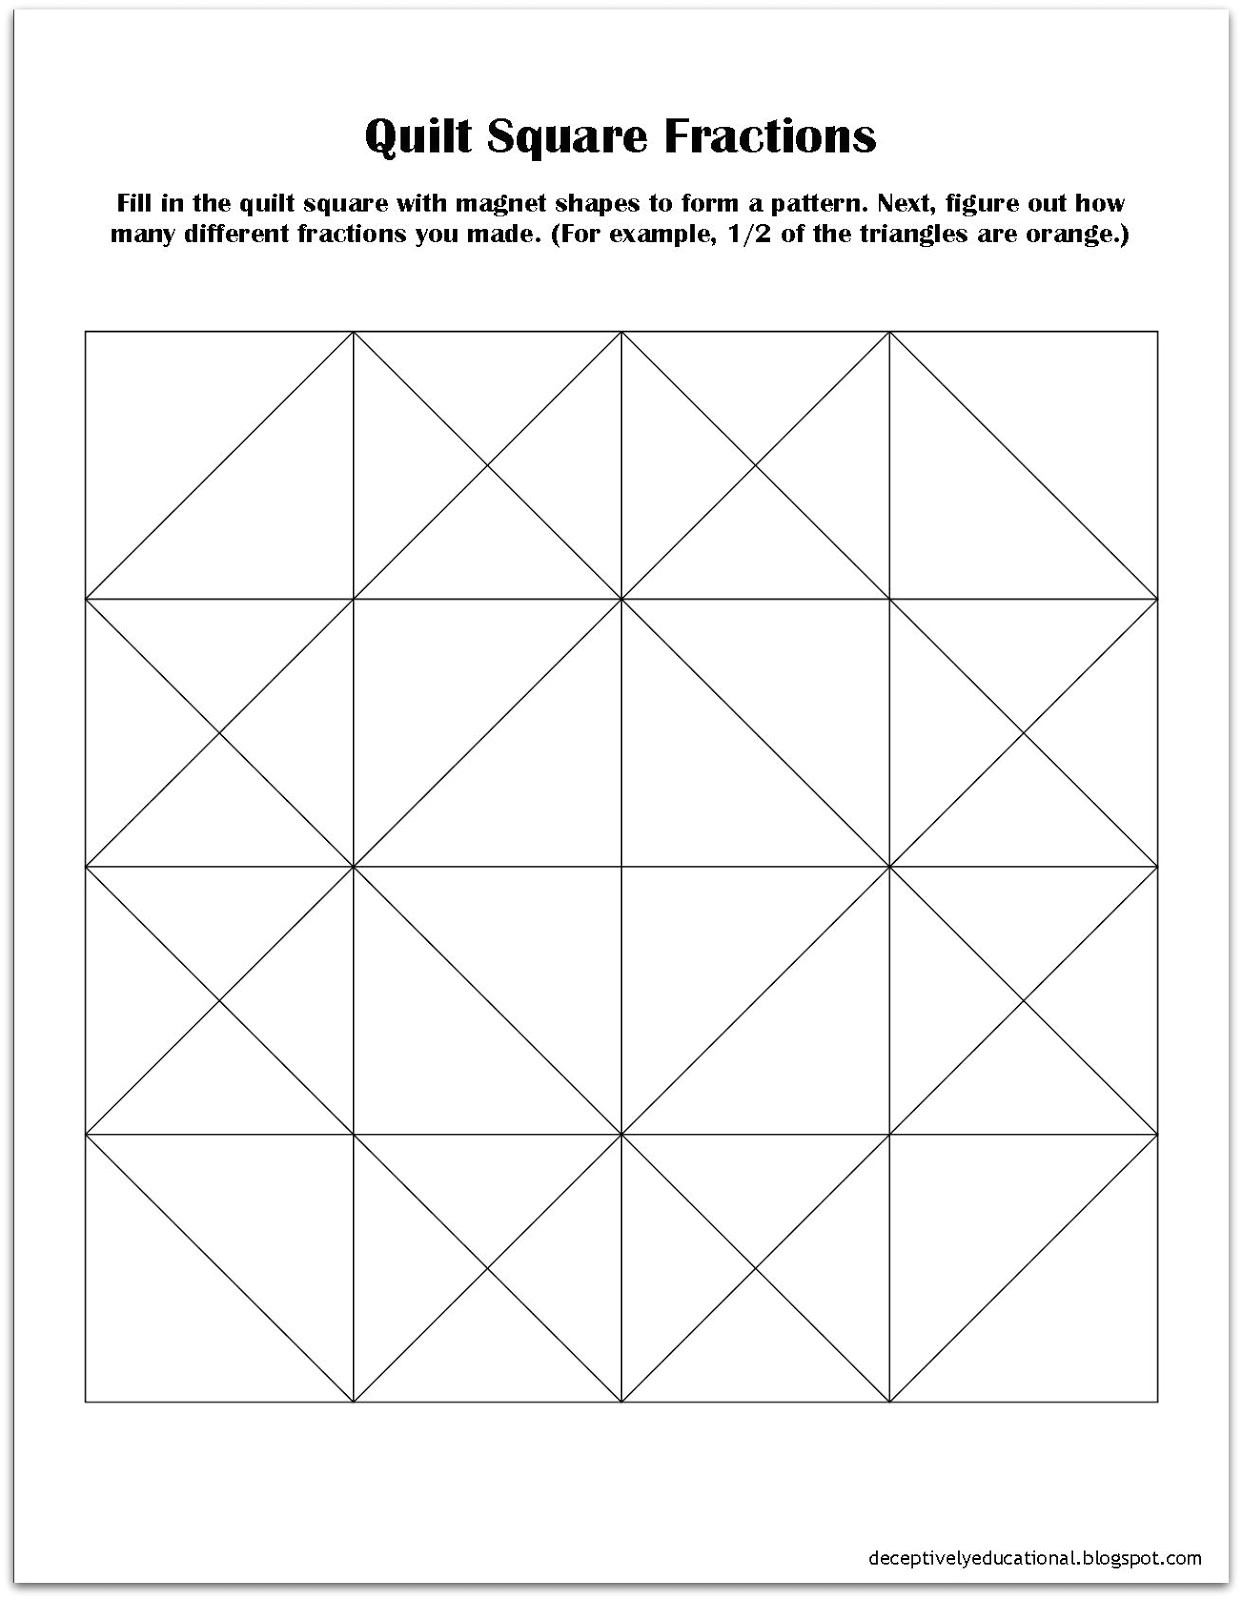 Square Templates for Quilting Relentlessly Fun Deceptively Educational Quilt Square